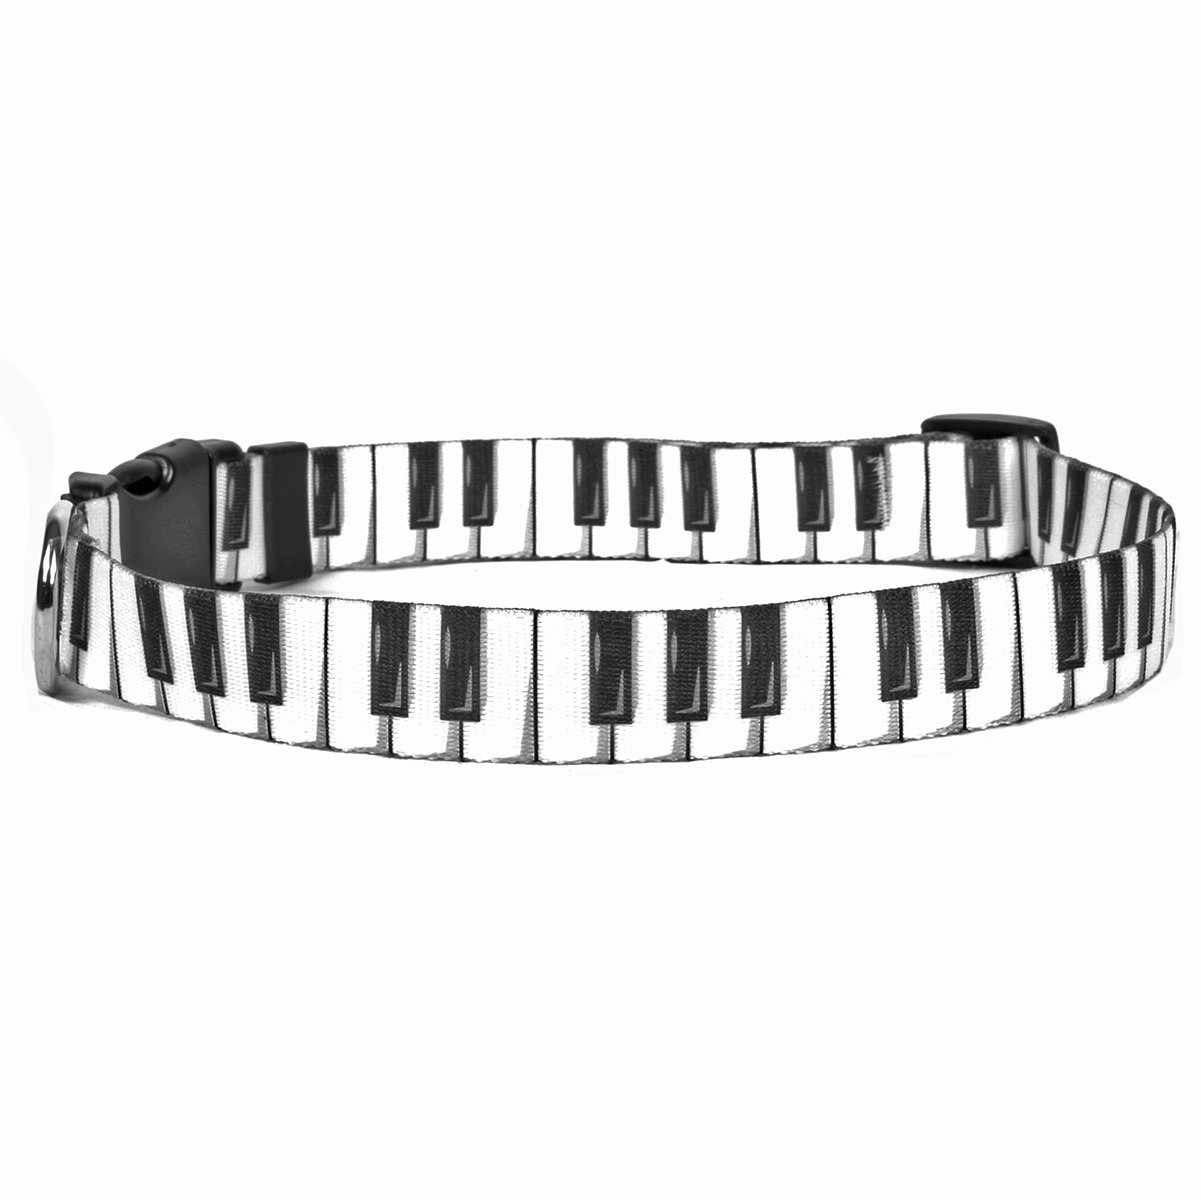 Yellow Dog Design Piano Keys Dog Collar, Teacup-3/8 Wide and fits Neck Sizes 4 to 9''